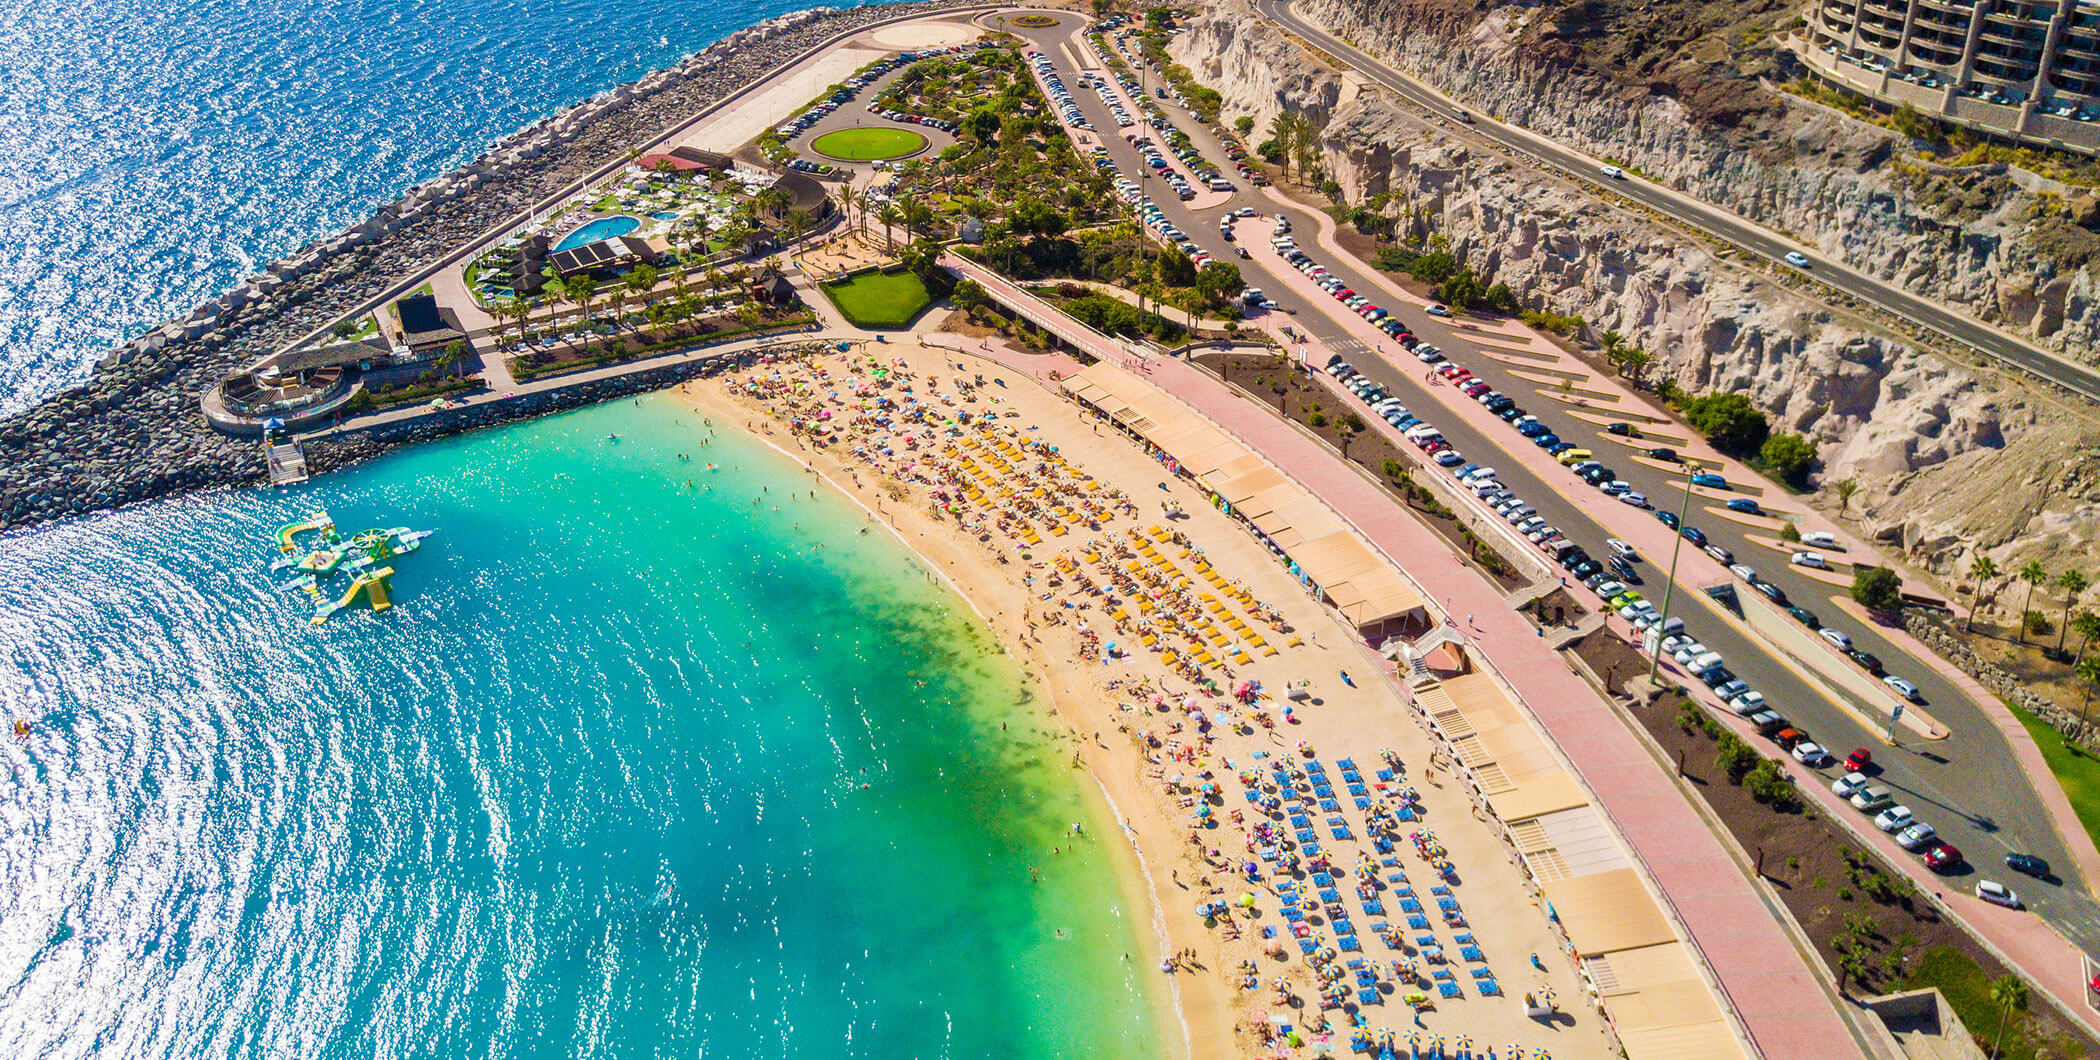 Landvetter Parkering | Top 5 places you need to see in Gran Canaria